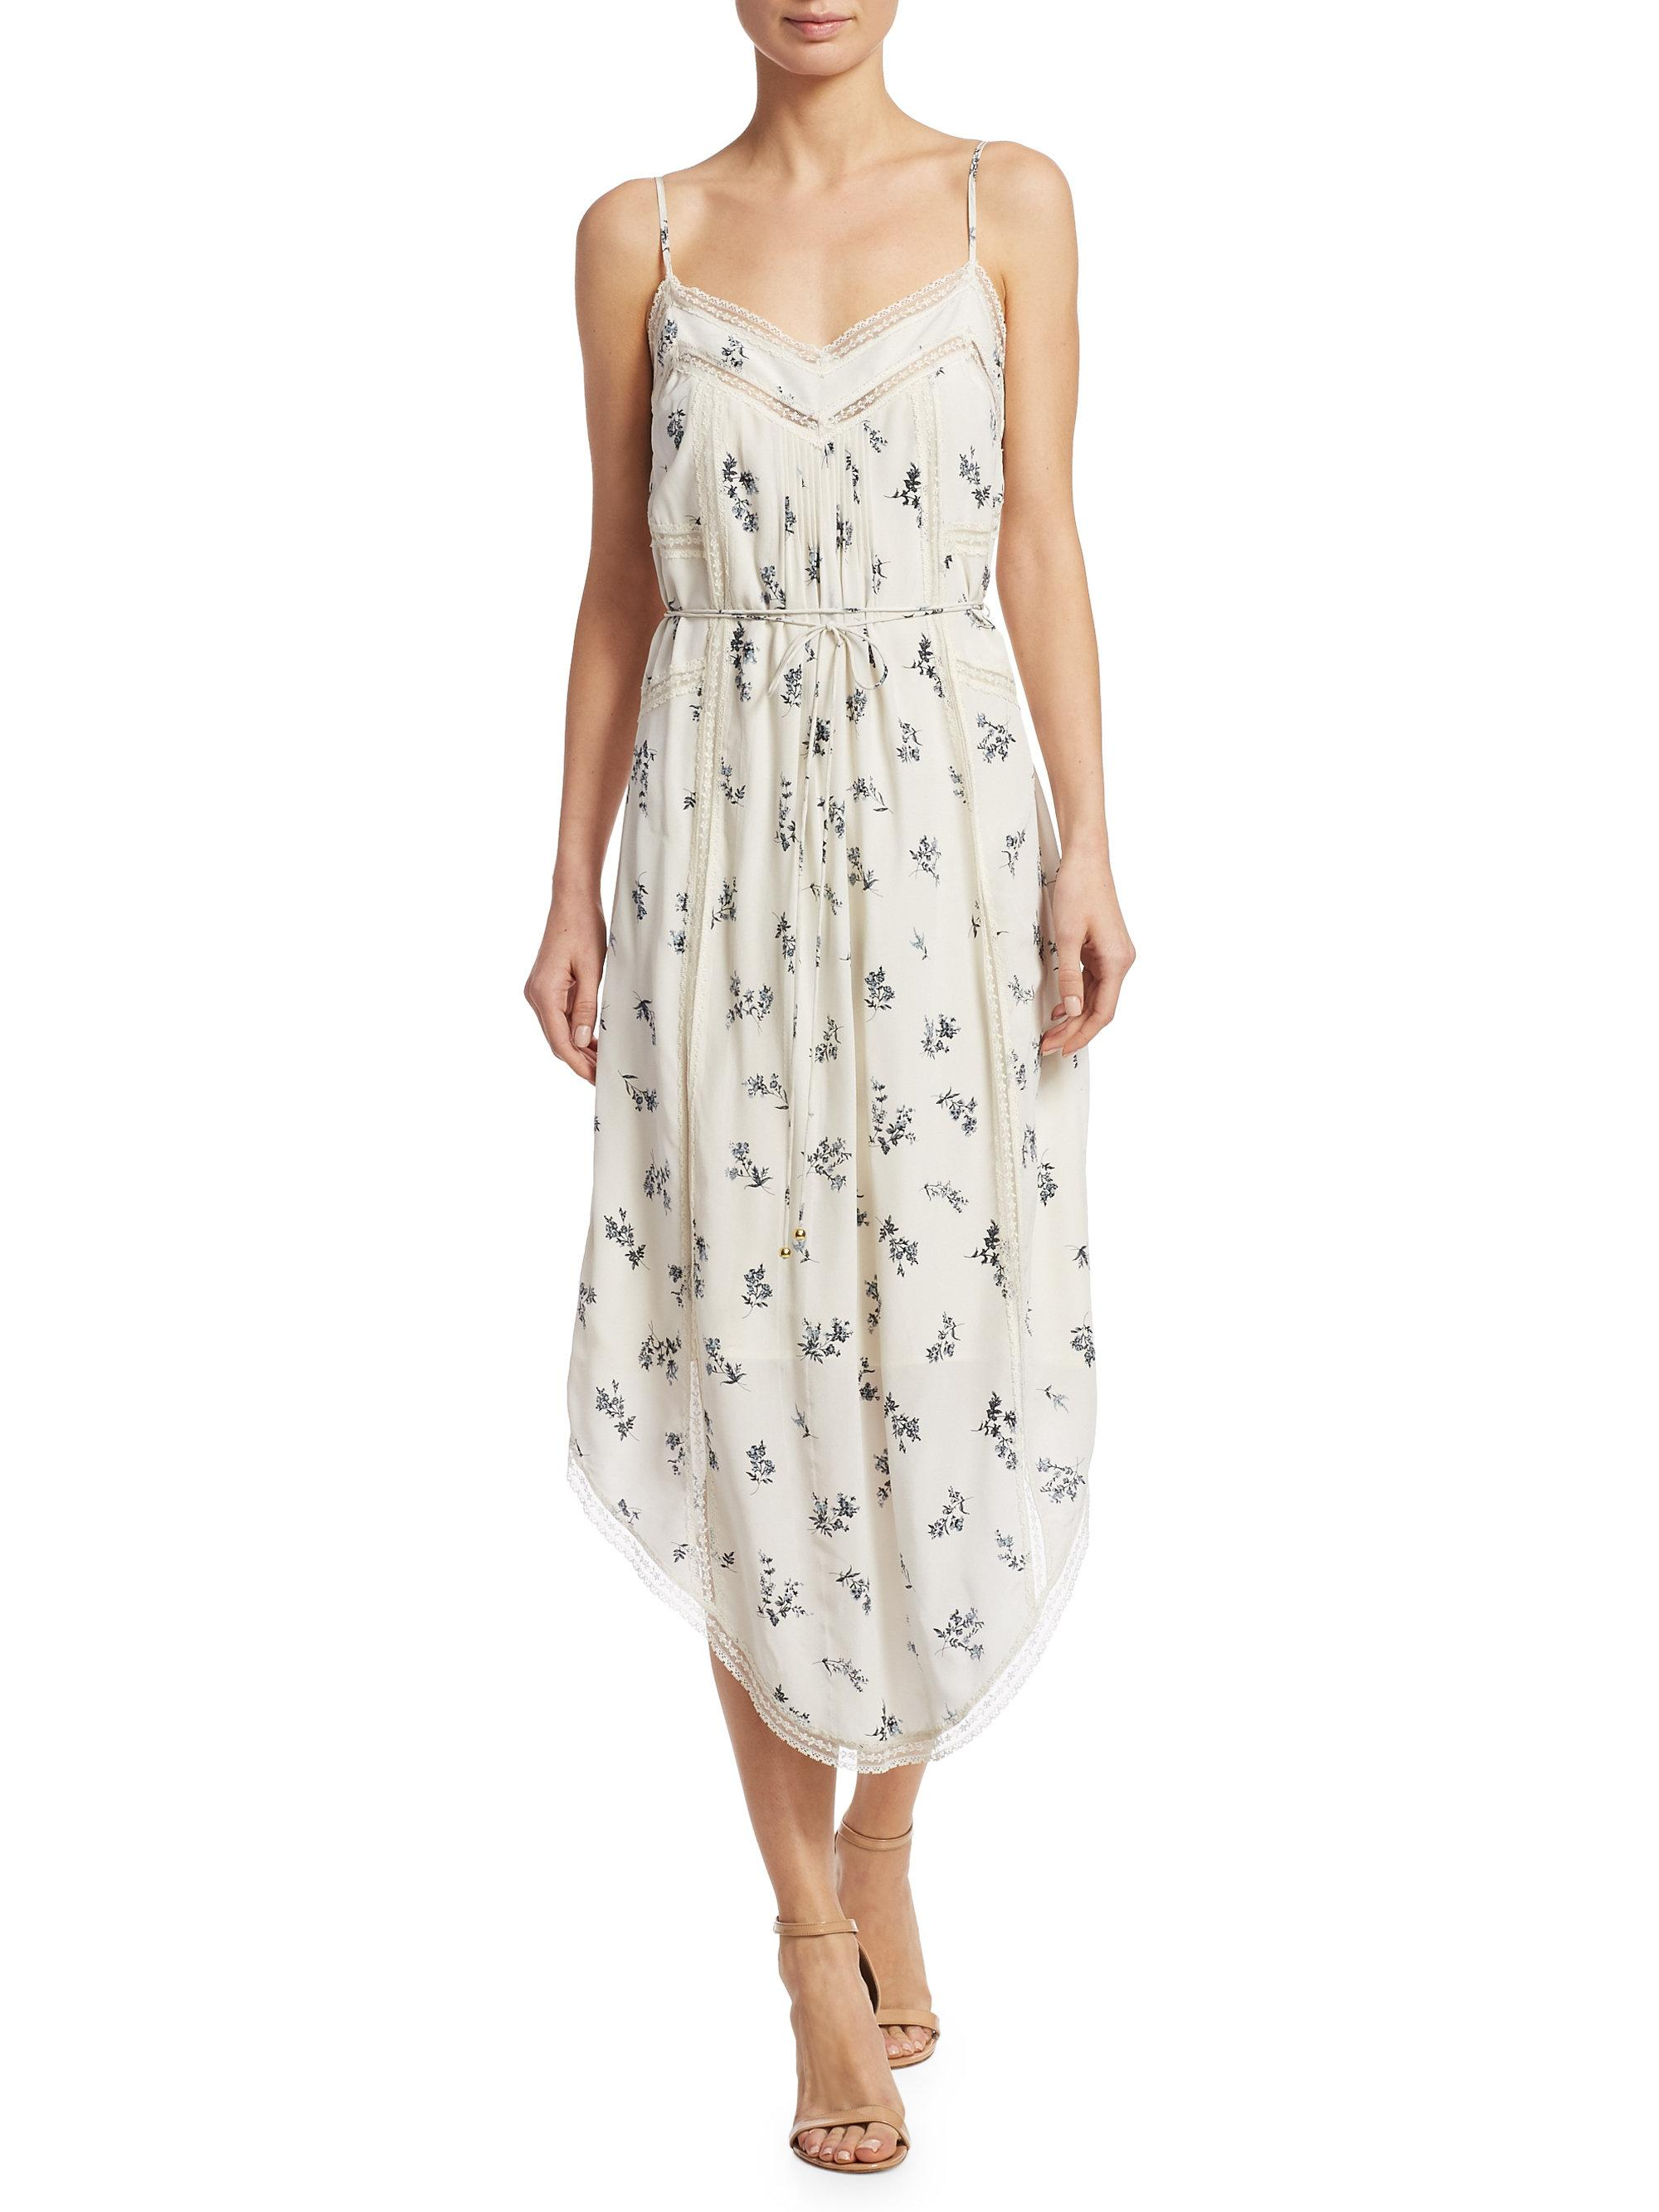 Free Shipping Get To Buy Whitewash pintuck dress Zimmermann Outlet Order Online Sale Real Clearance Perfect dPI6osoP